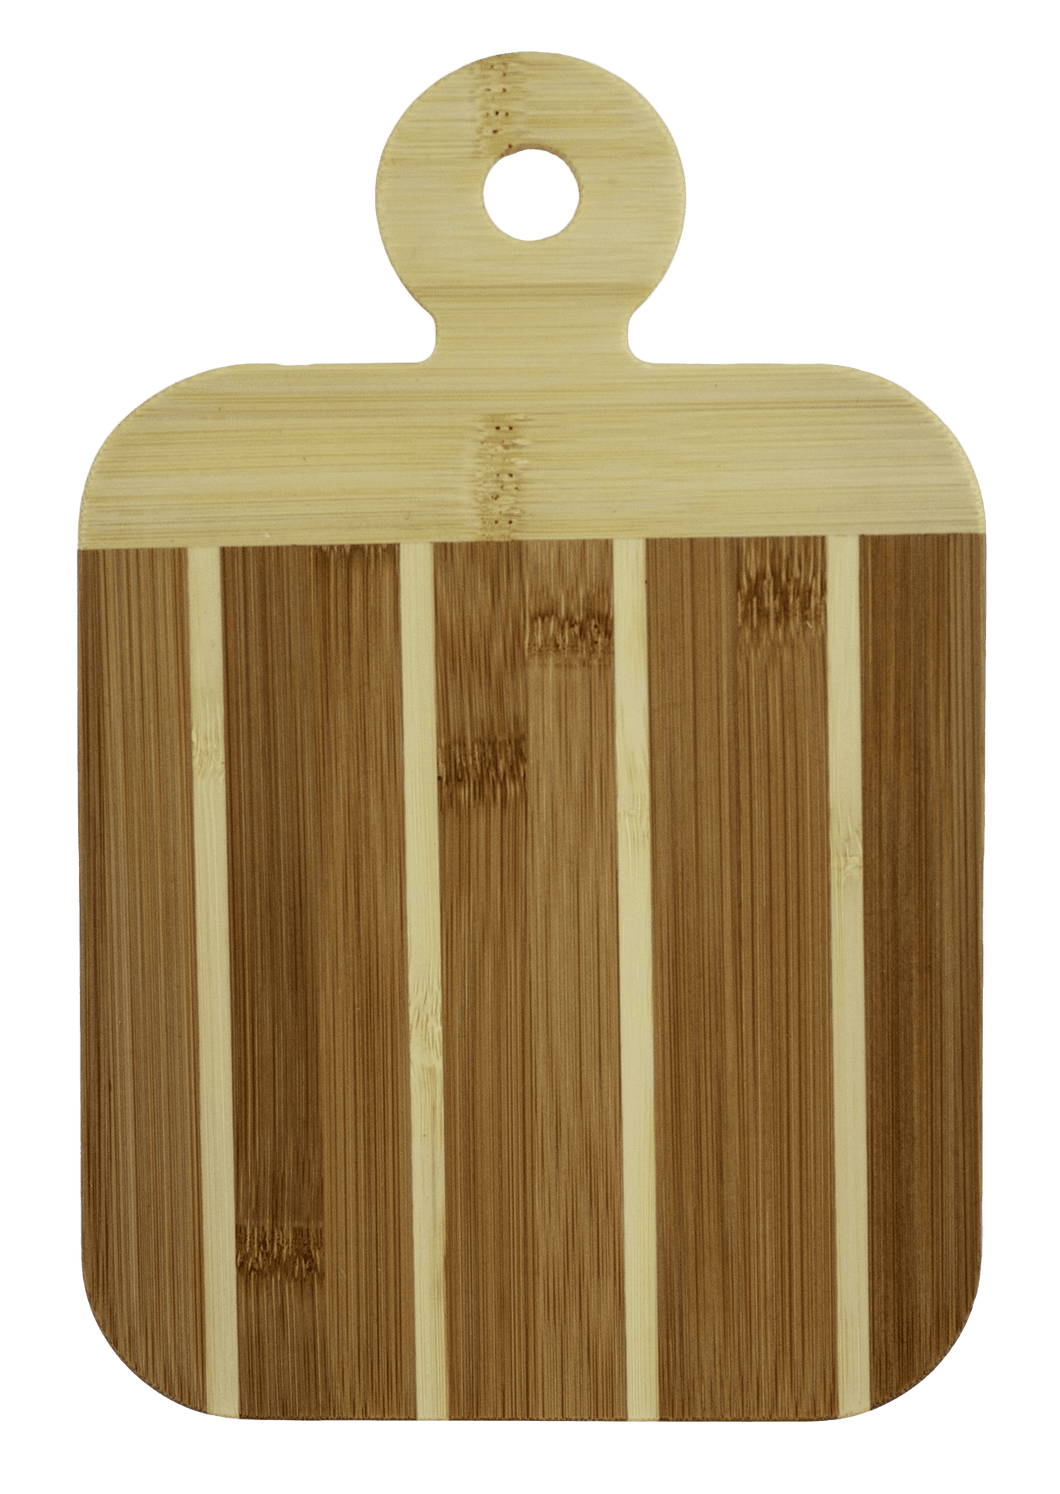 Striped Paddle Serving and Cutting Board | Laser Pics & Gifts